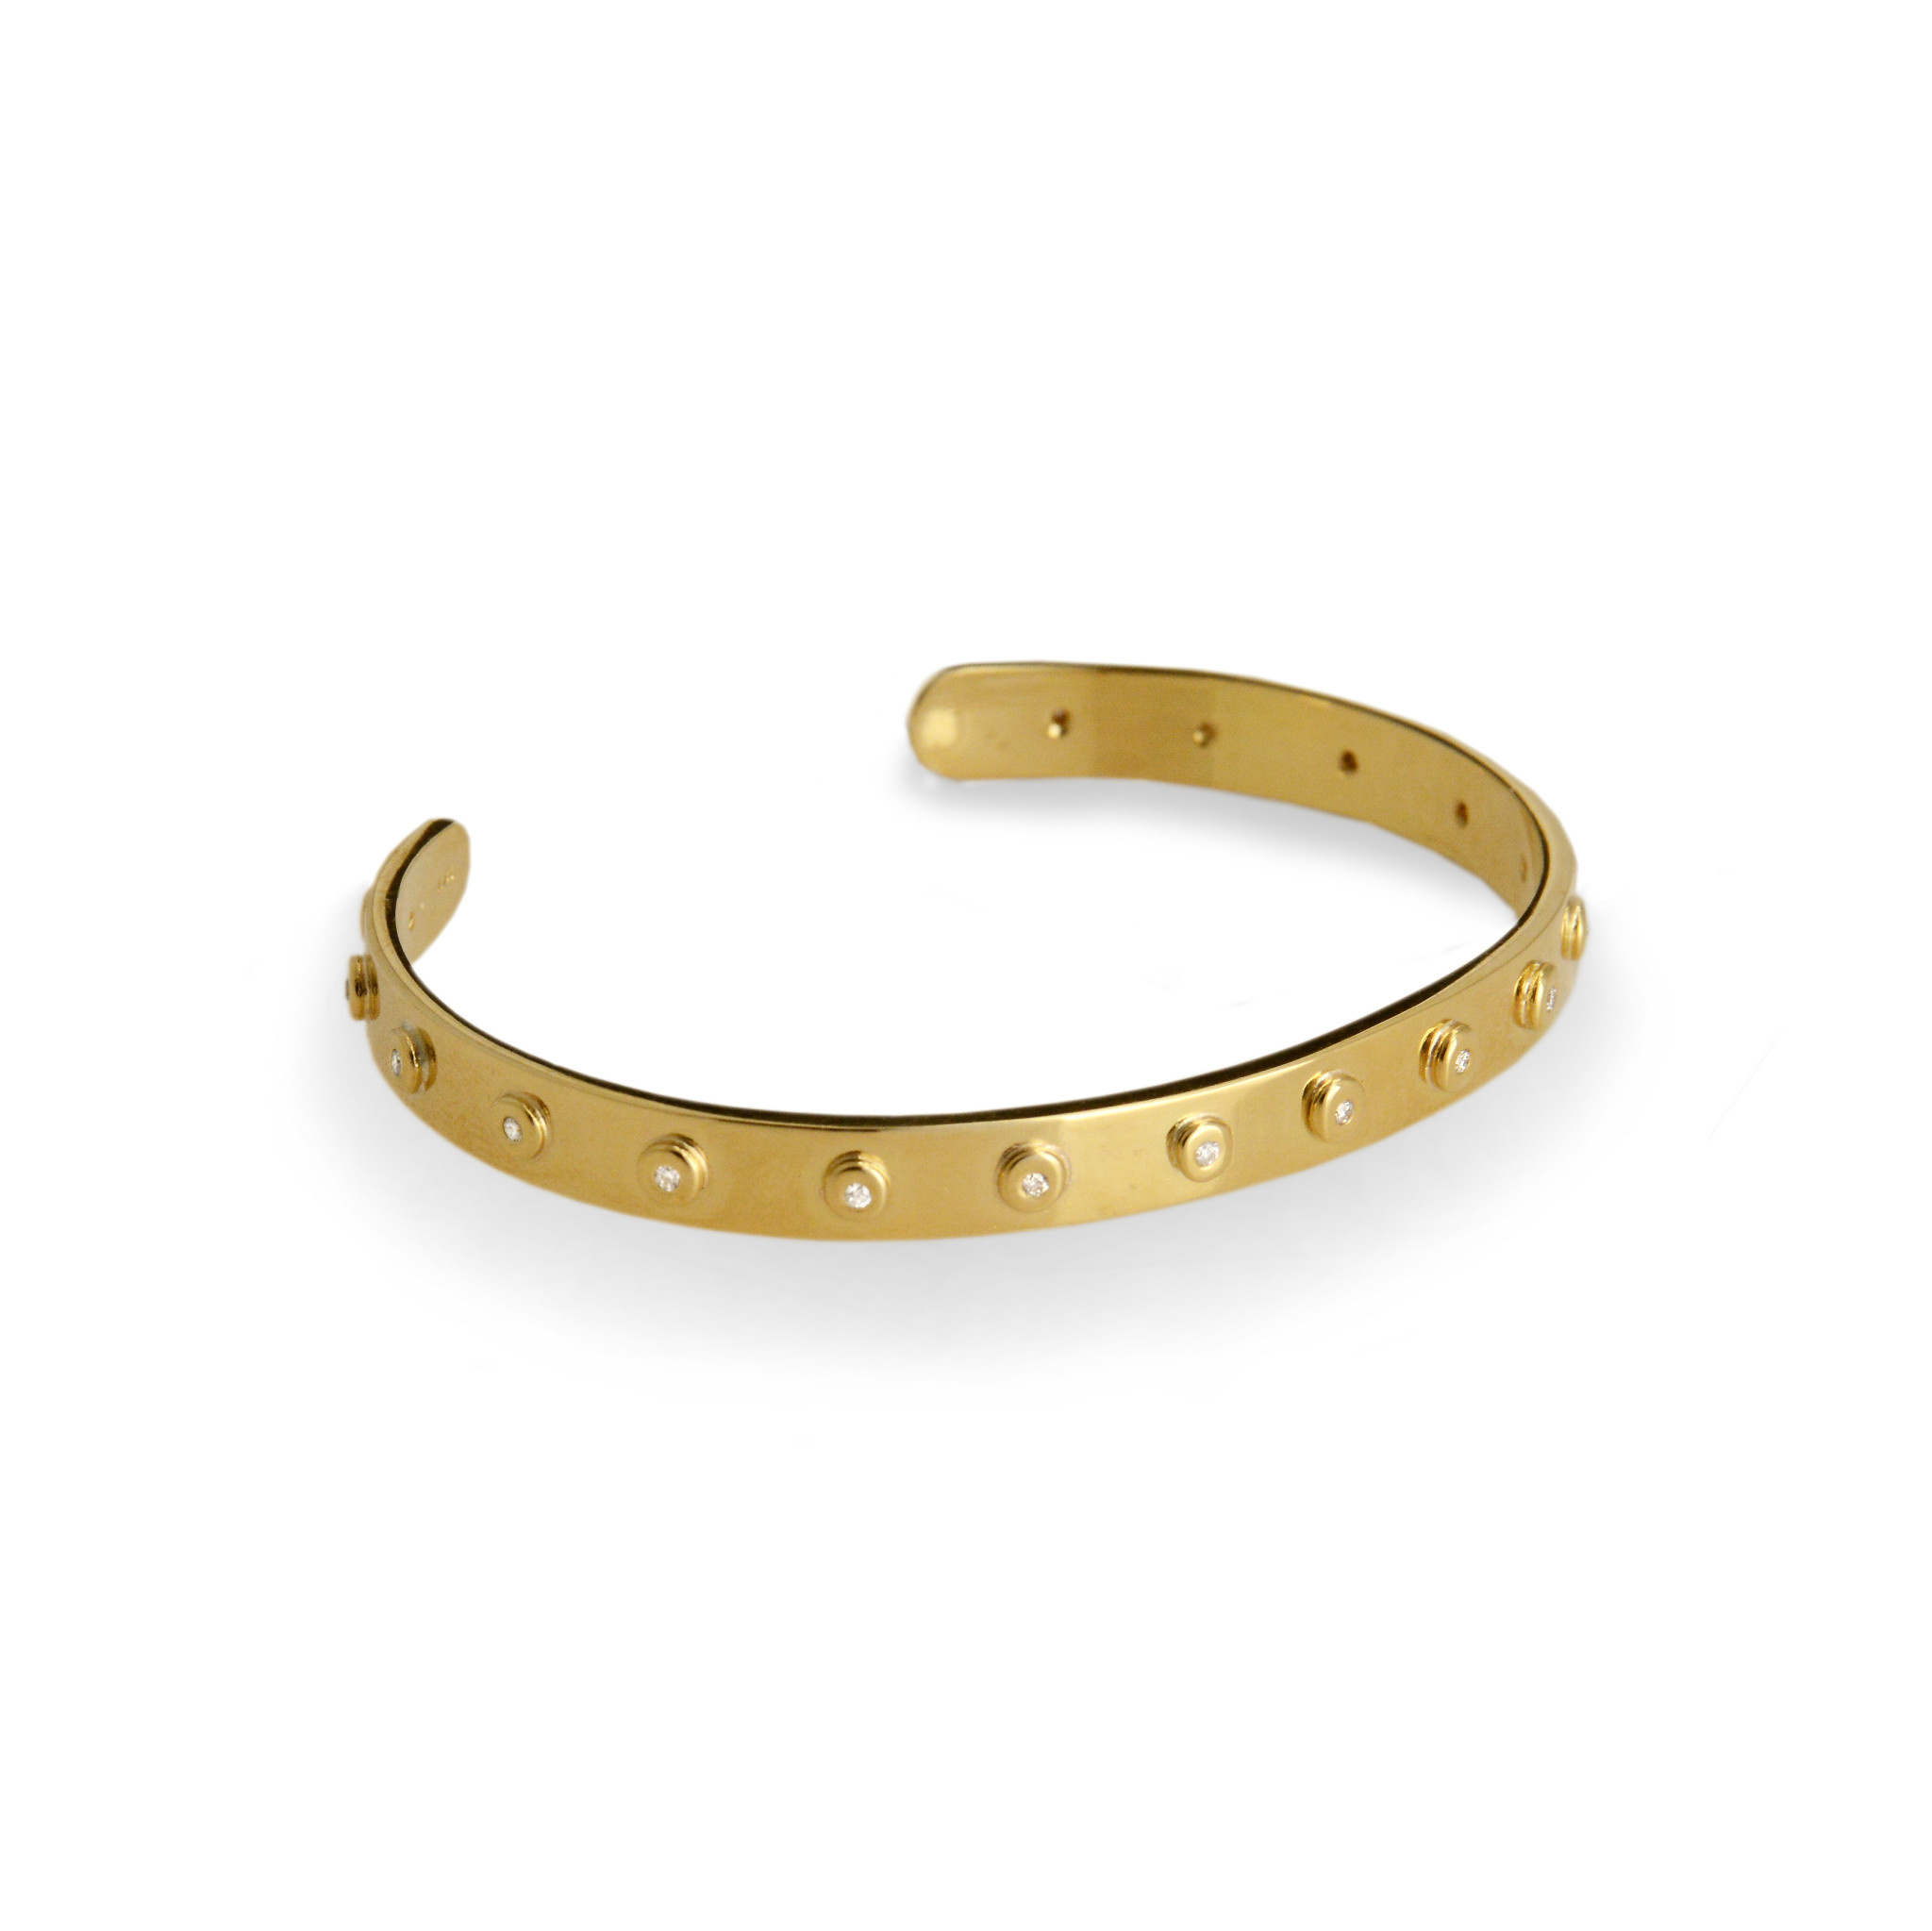 Diamond Studded Compliment Cuff - Polished Gold